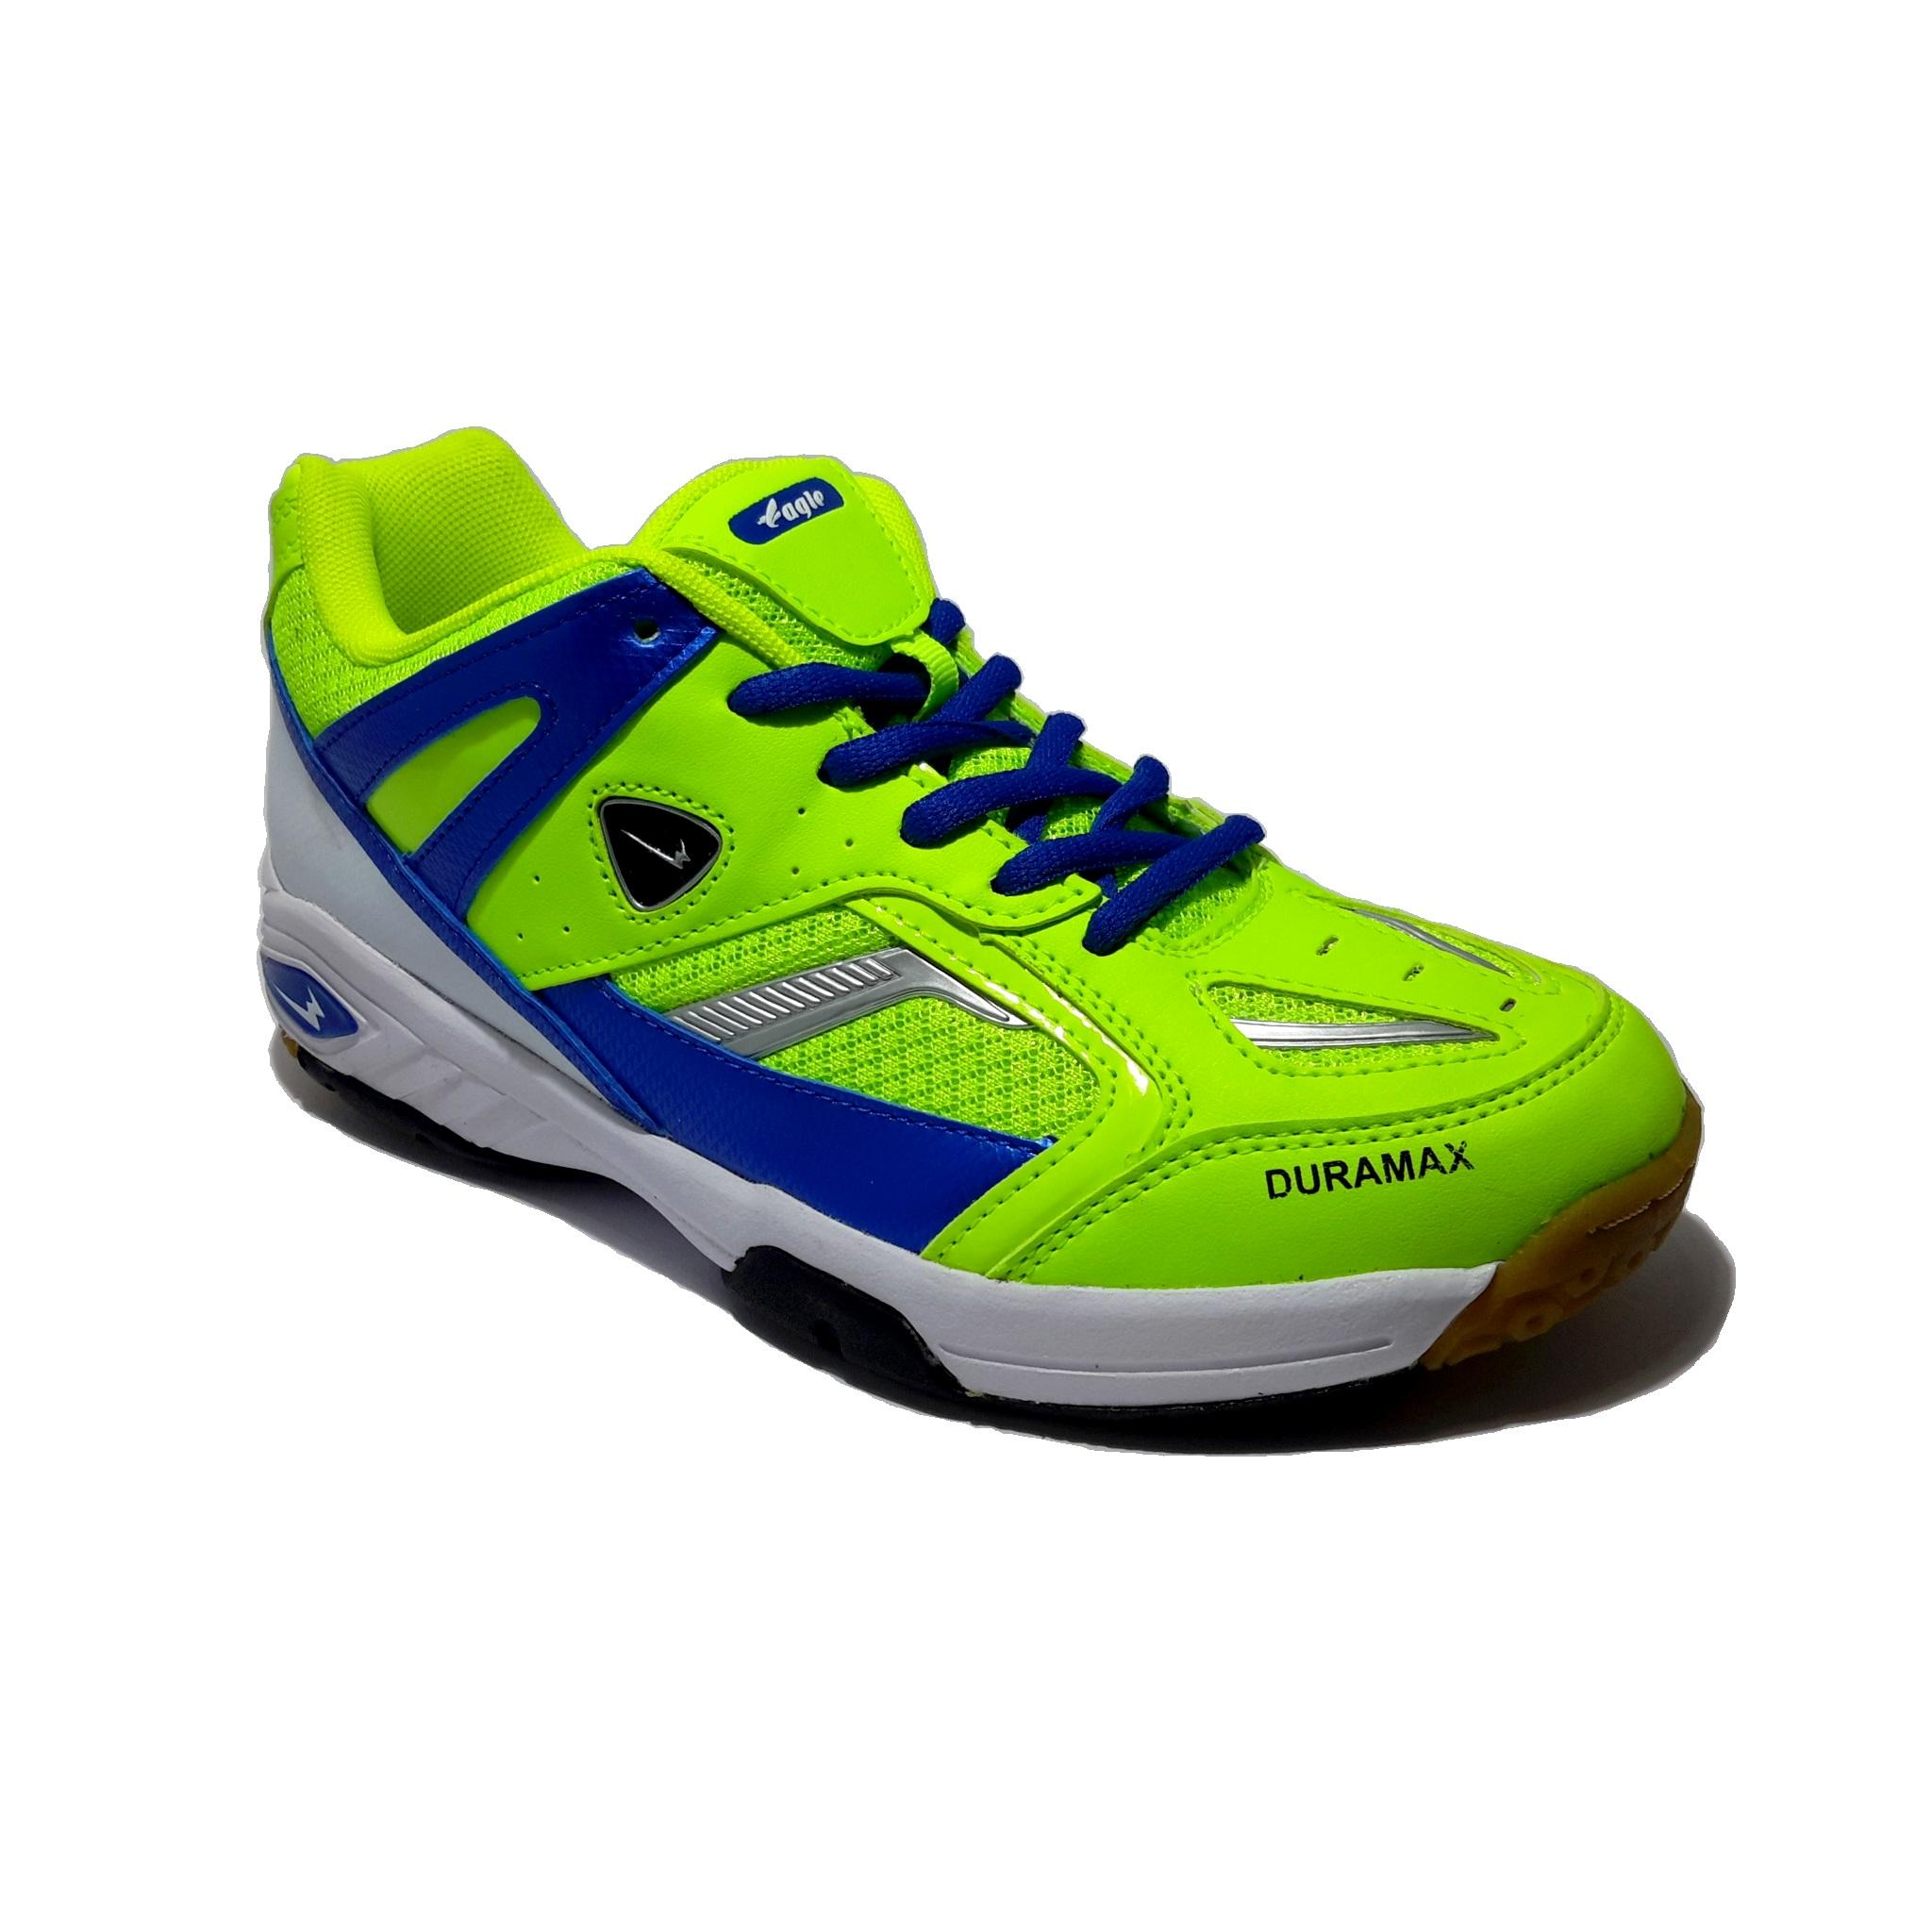 Jual Sepatu Badminton Eagle Terbaru Welcome To Cybertooth Metro Citroen Rblue